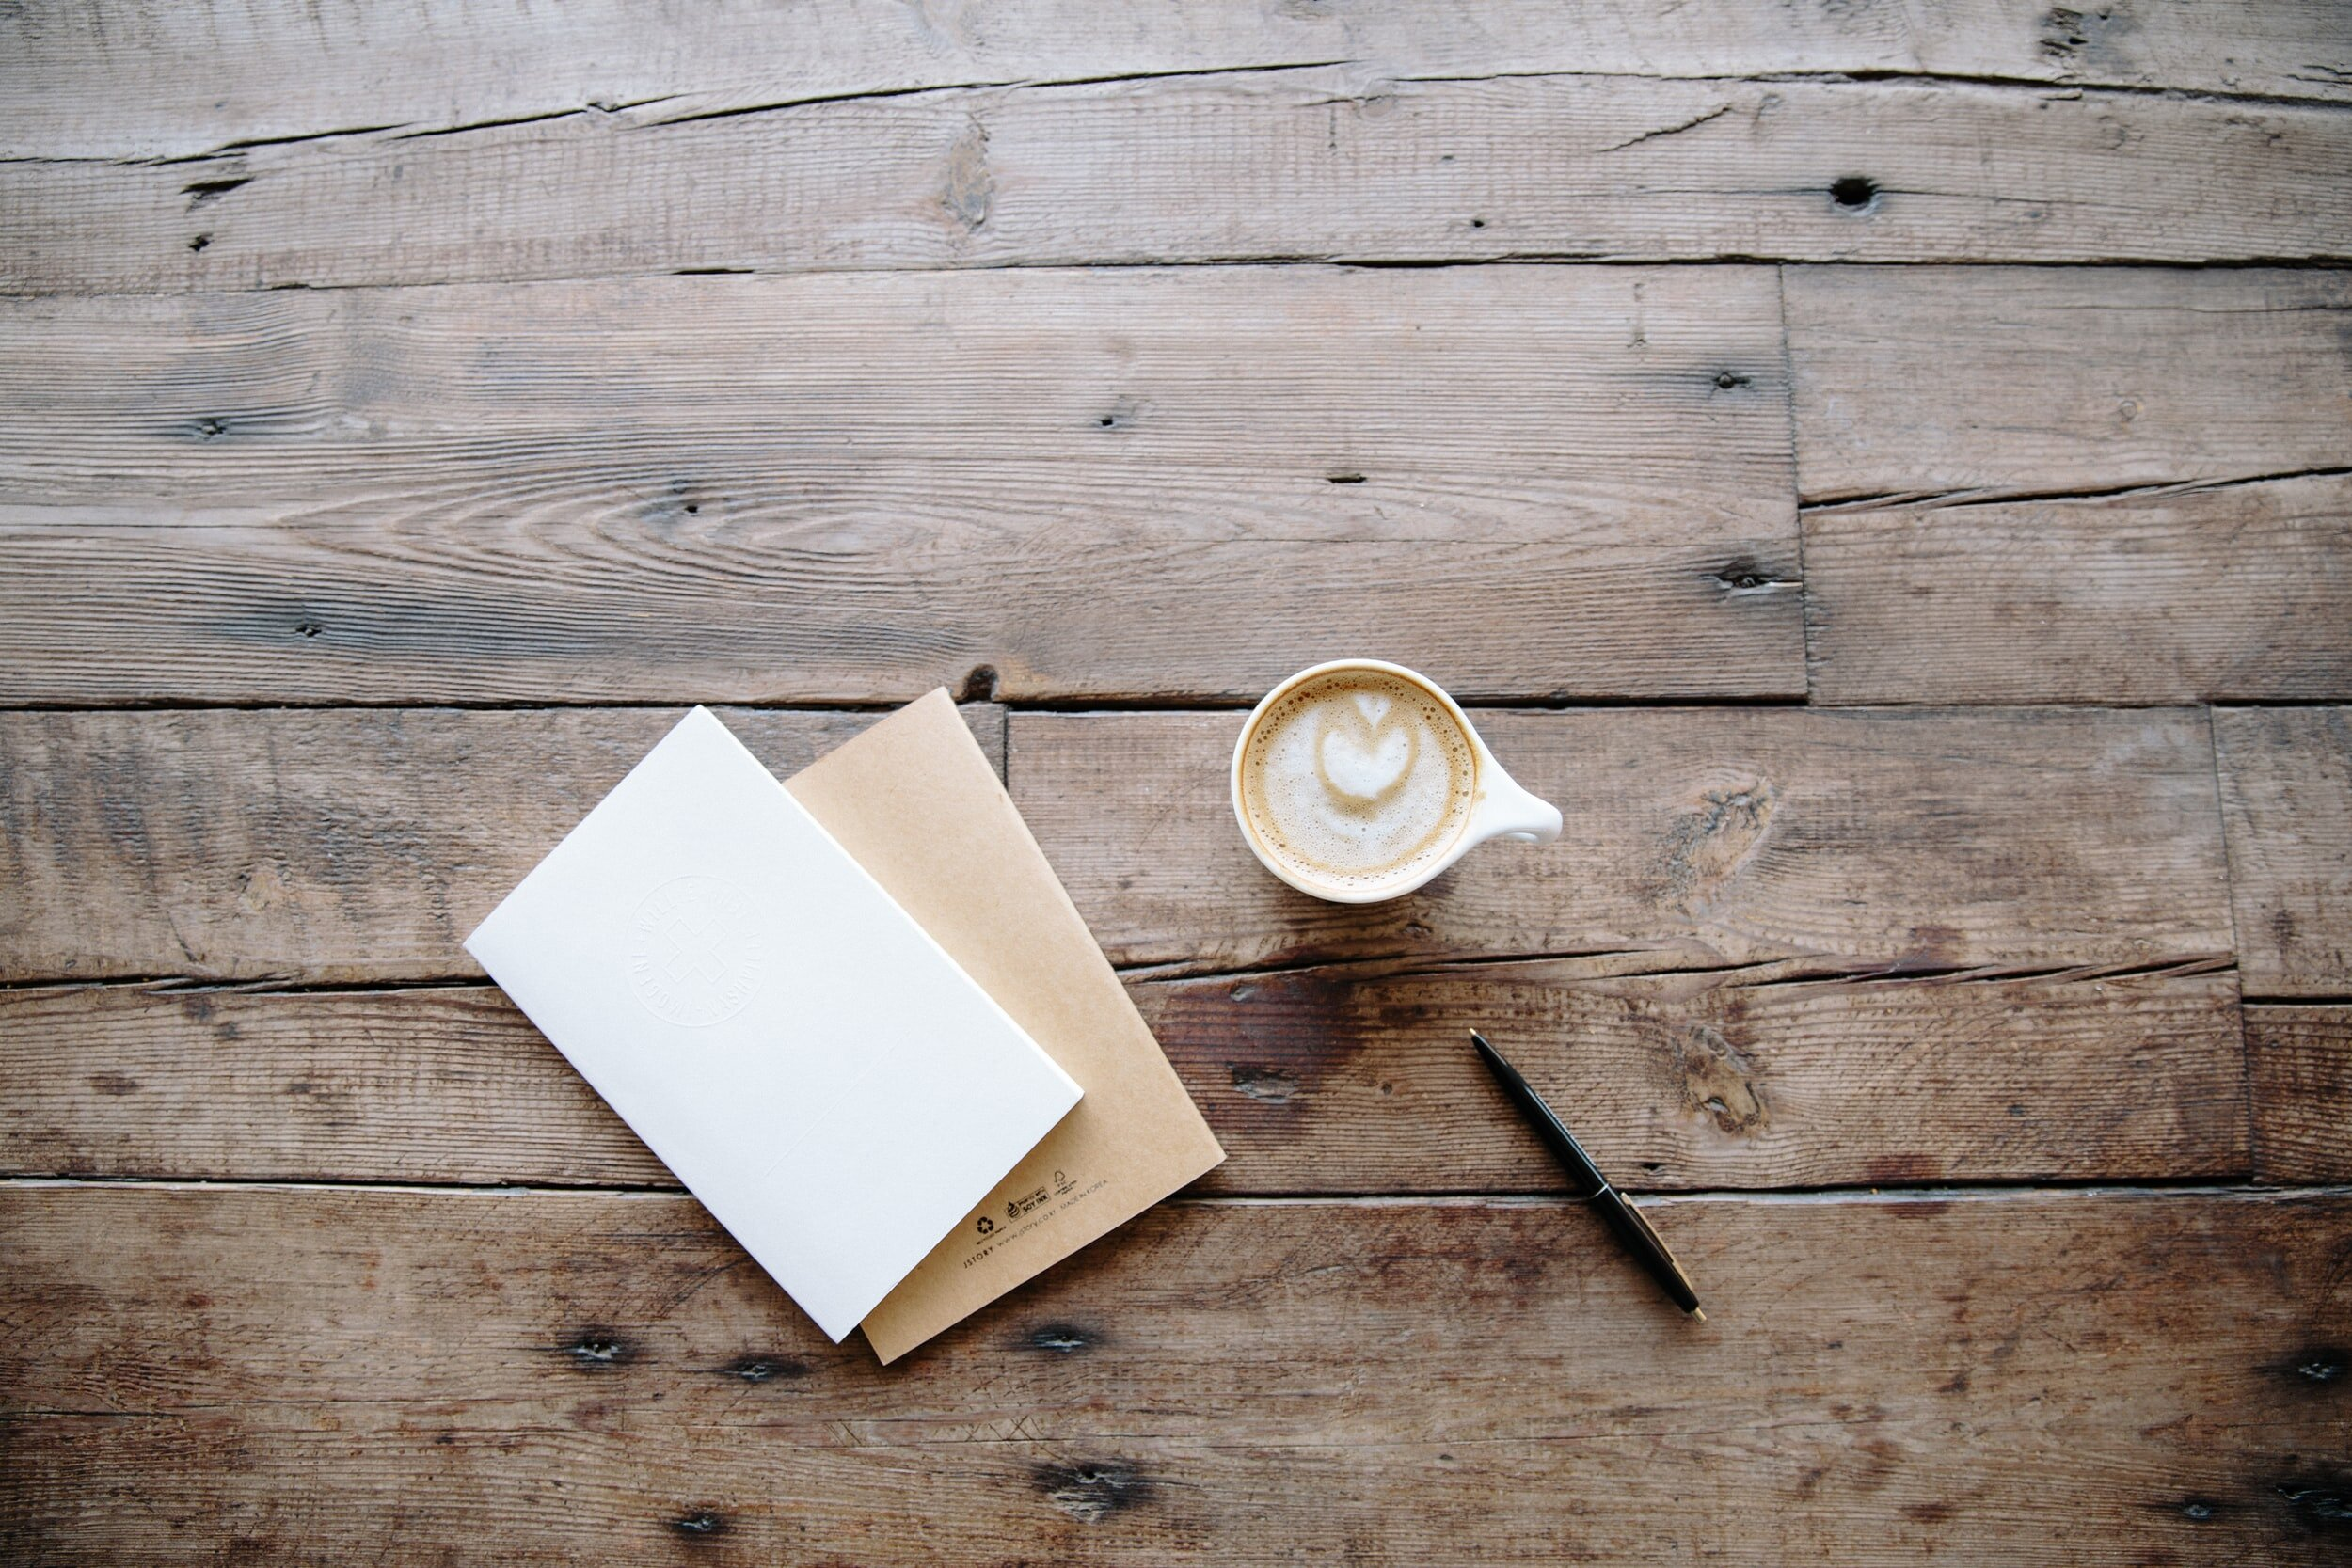 cup of coffee, pen a note pads on a wooden table